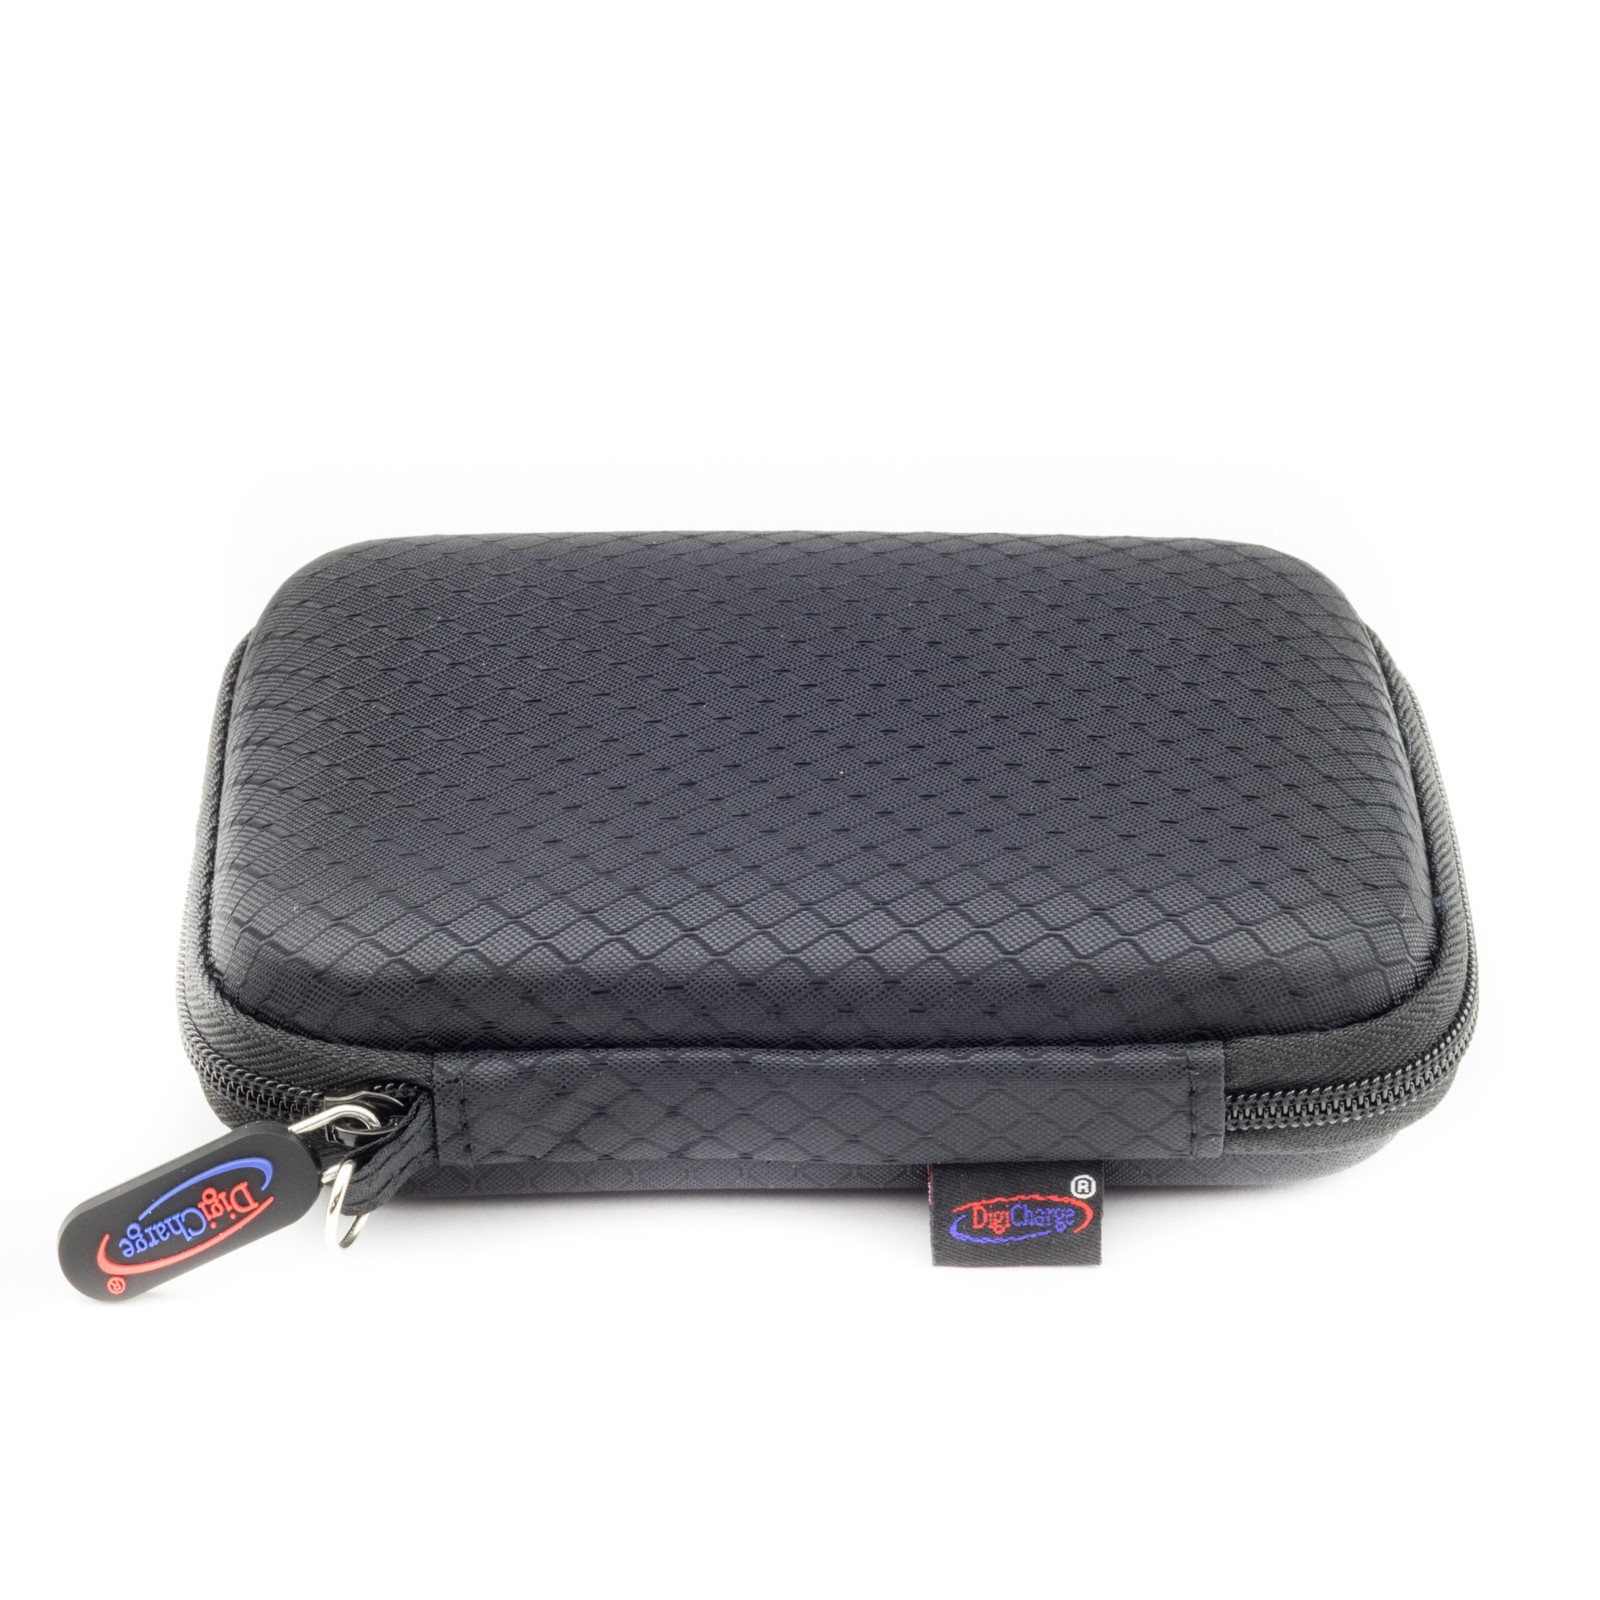 Black Case For Toshiba Canvio Ready External Portable Hard Drive Pouch Harddisk 25 Hdd